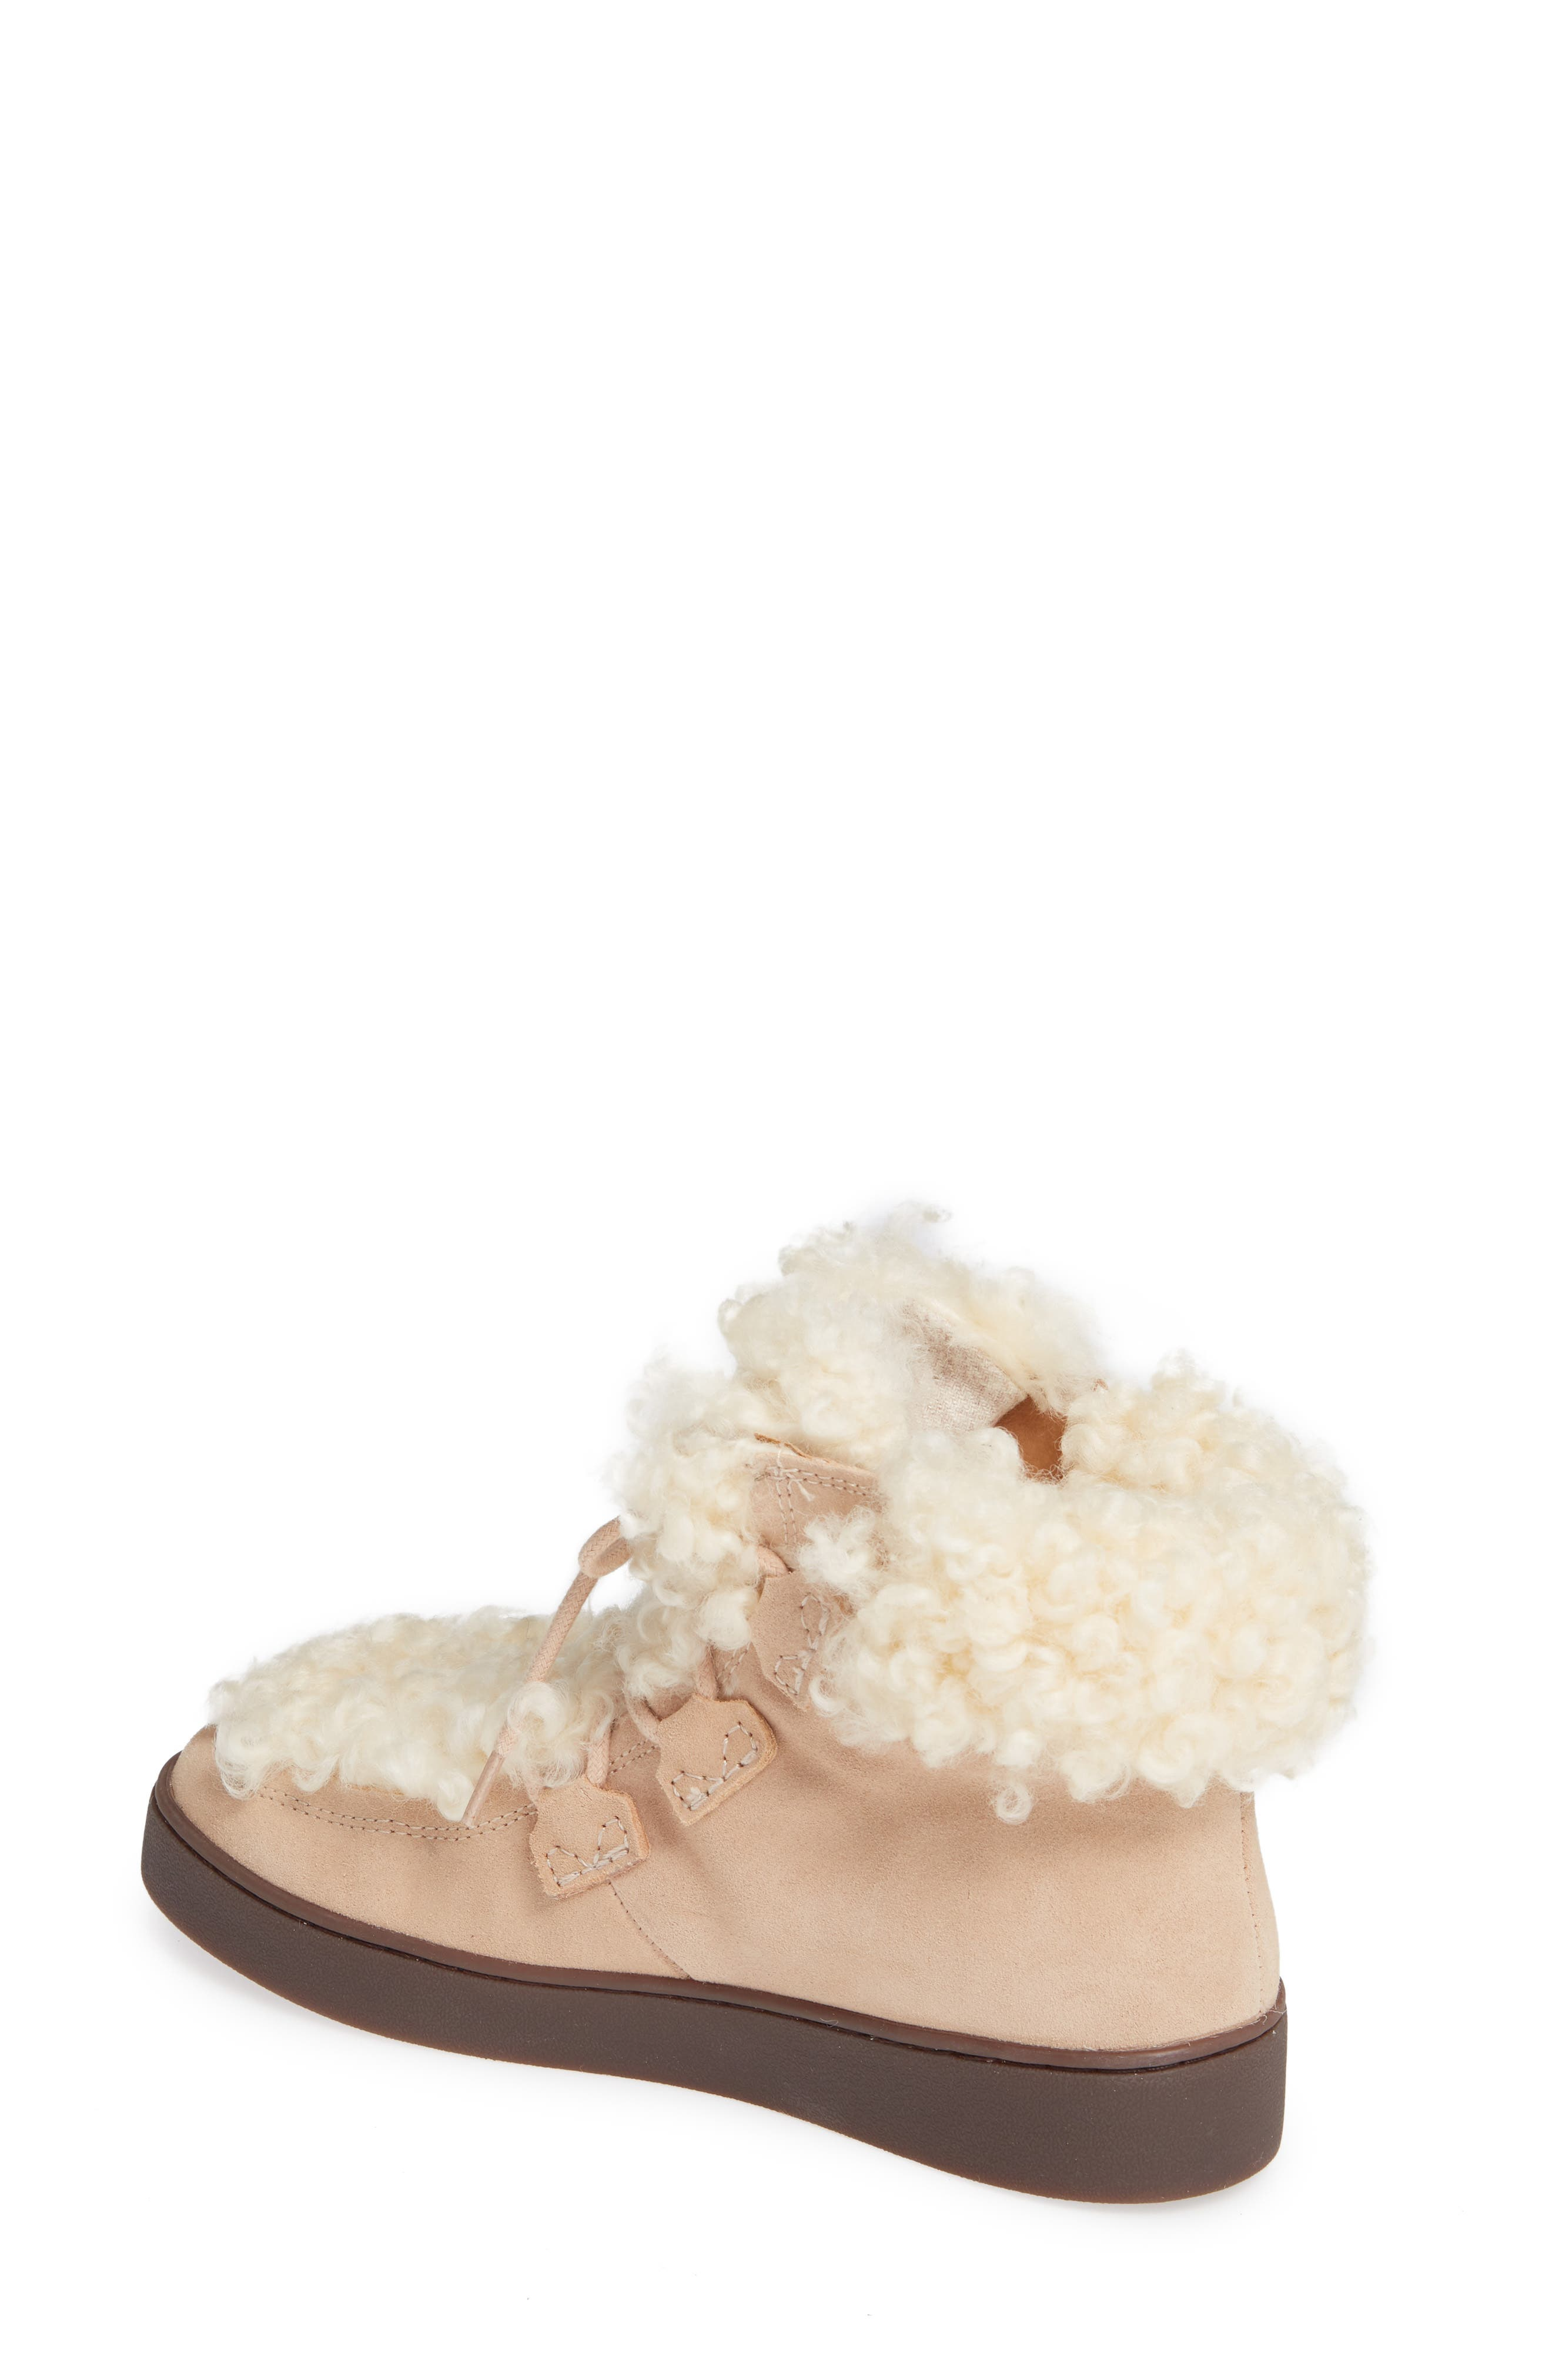 Oak Genuine Shearling Cuff Sneaker Bootie,                             Alternate thumbnail 2, color,                             SAND SUEDE